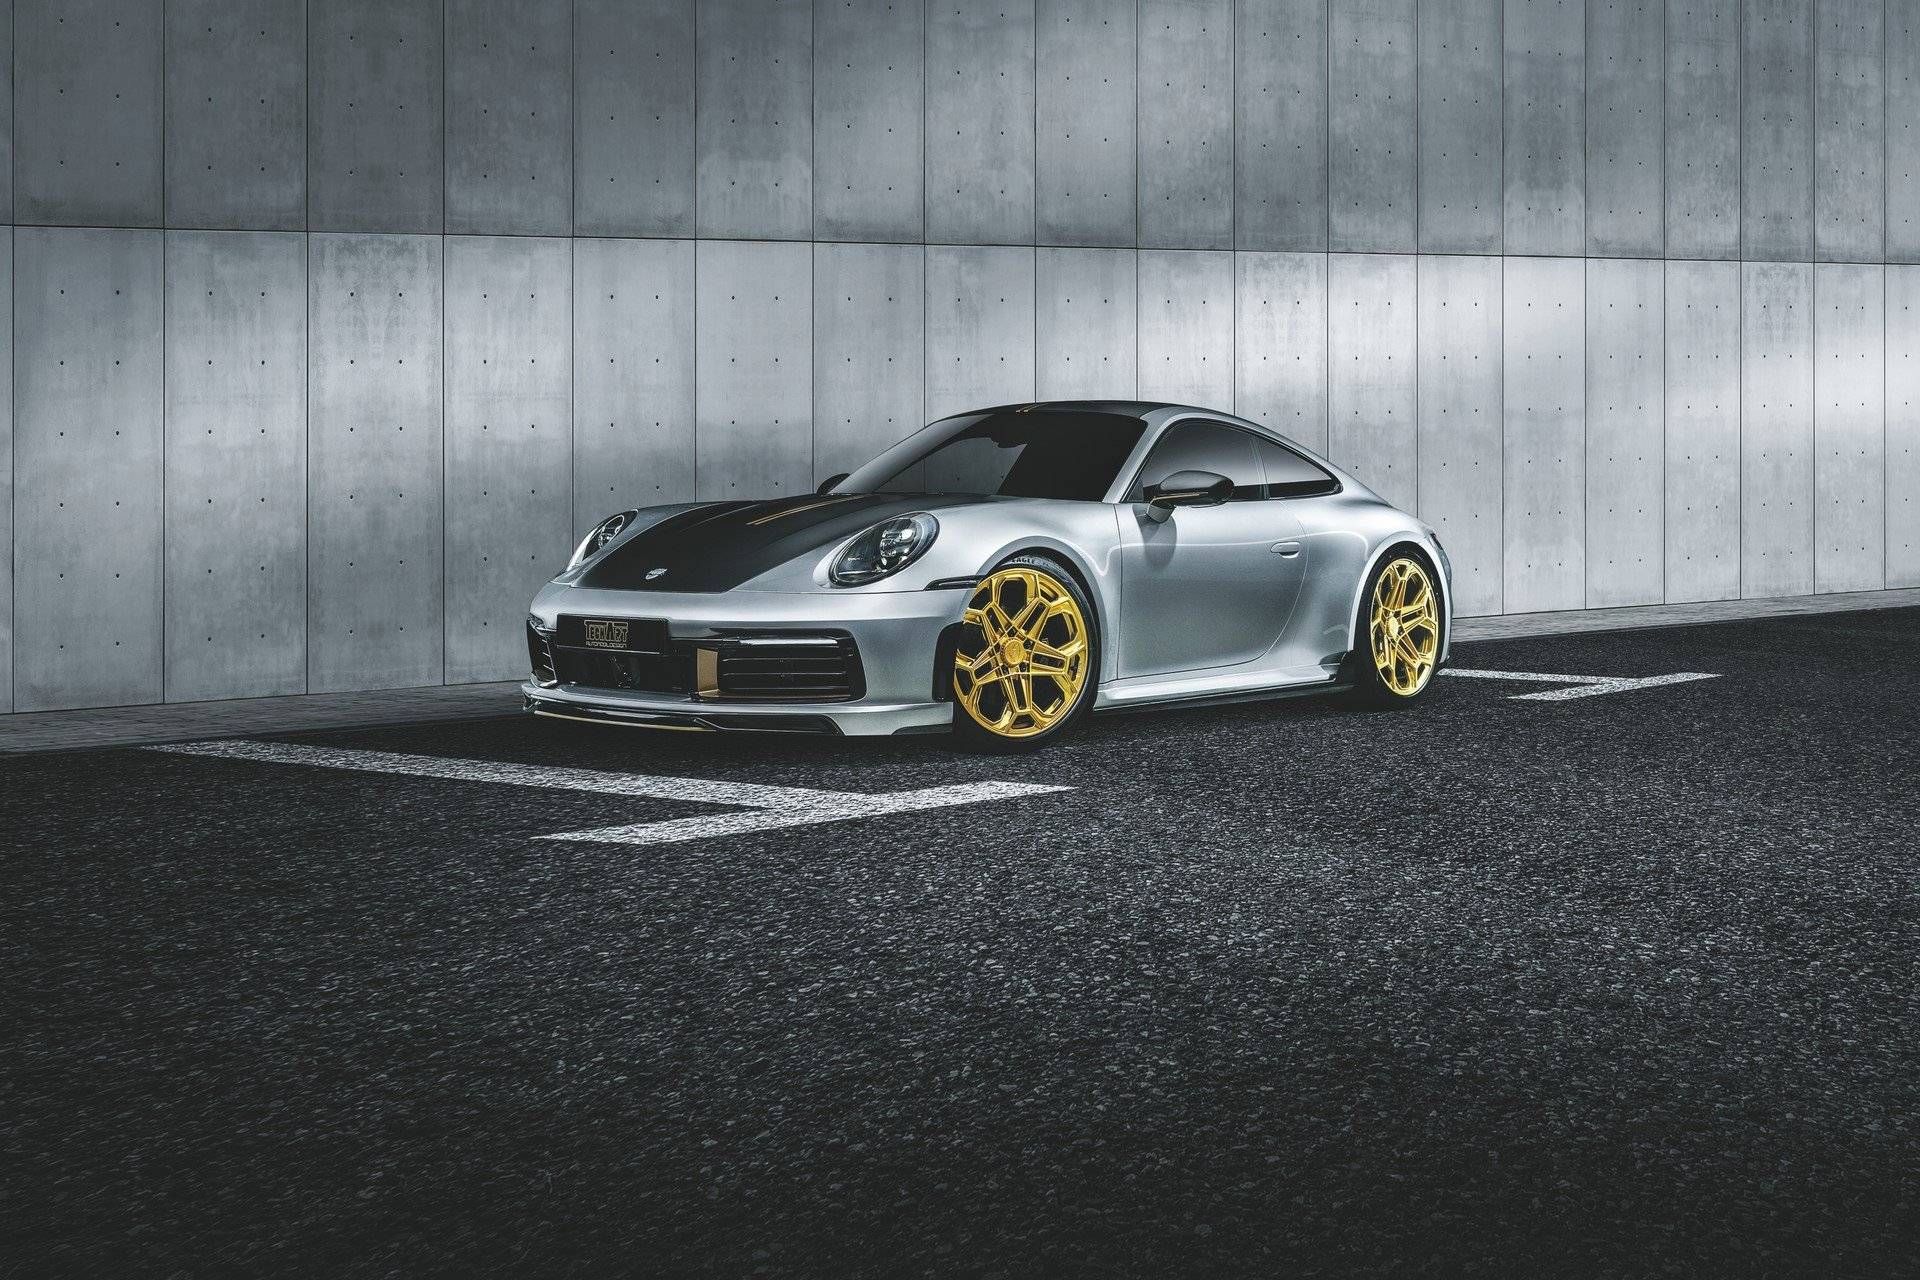 Porsche-911-Carrera-4S-by-TechArt-16